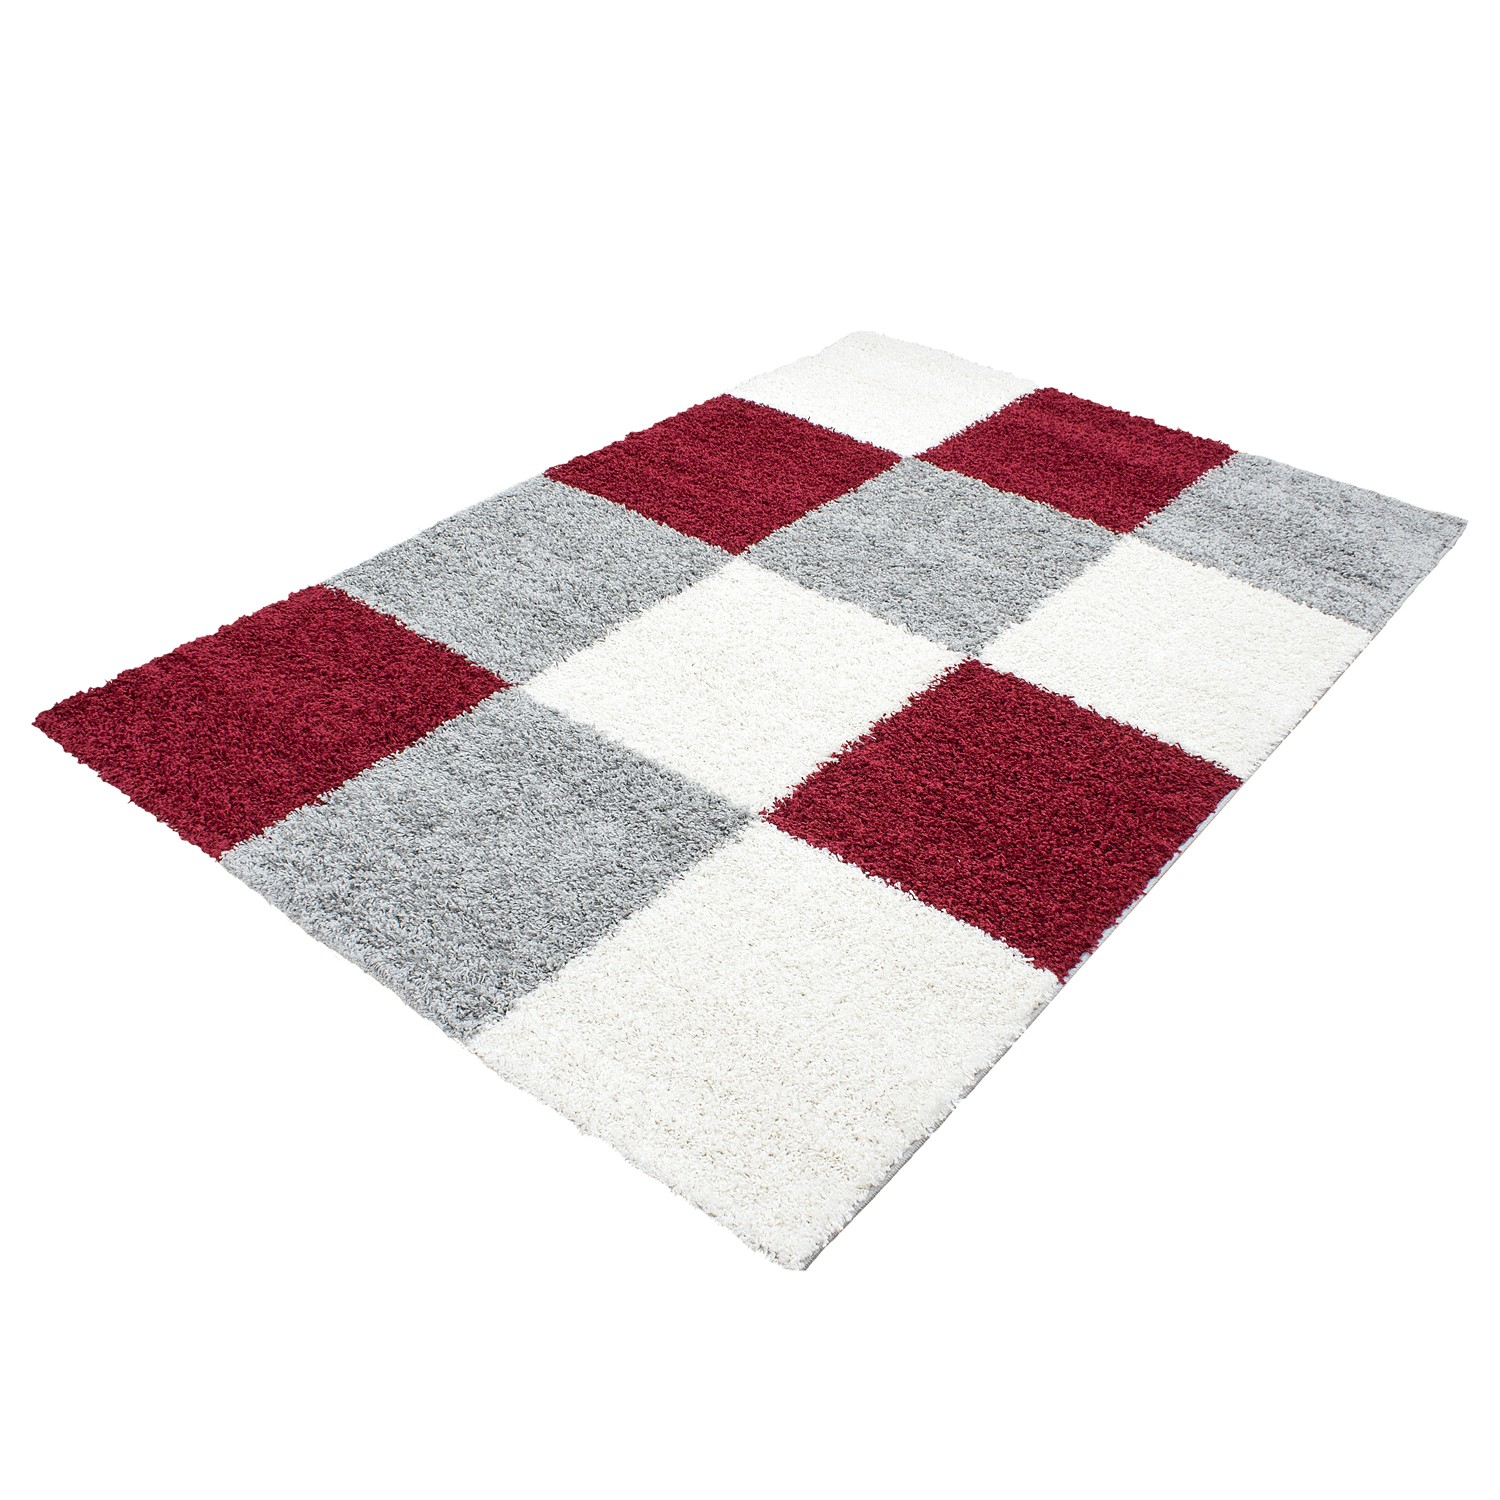 tapis shaggy longues m ches rouge gris cream hautes carreaux pas cher. Black Bedroom Furniture Sets. Home Design Ideas